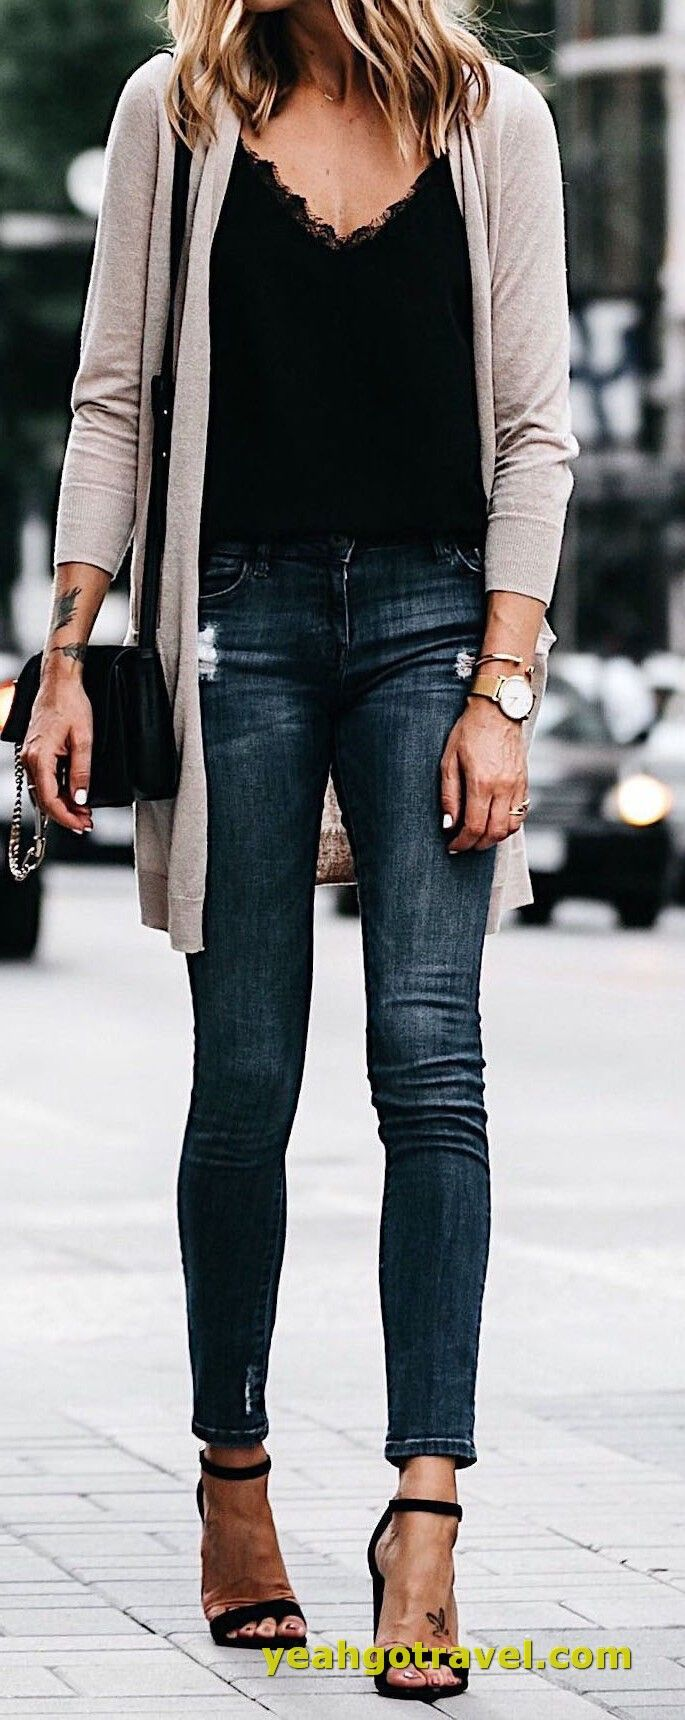 48 Women Winter Outfits Ideas #cardiganoutfit